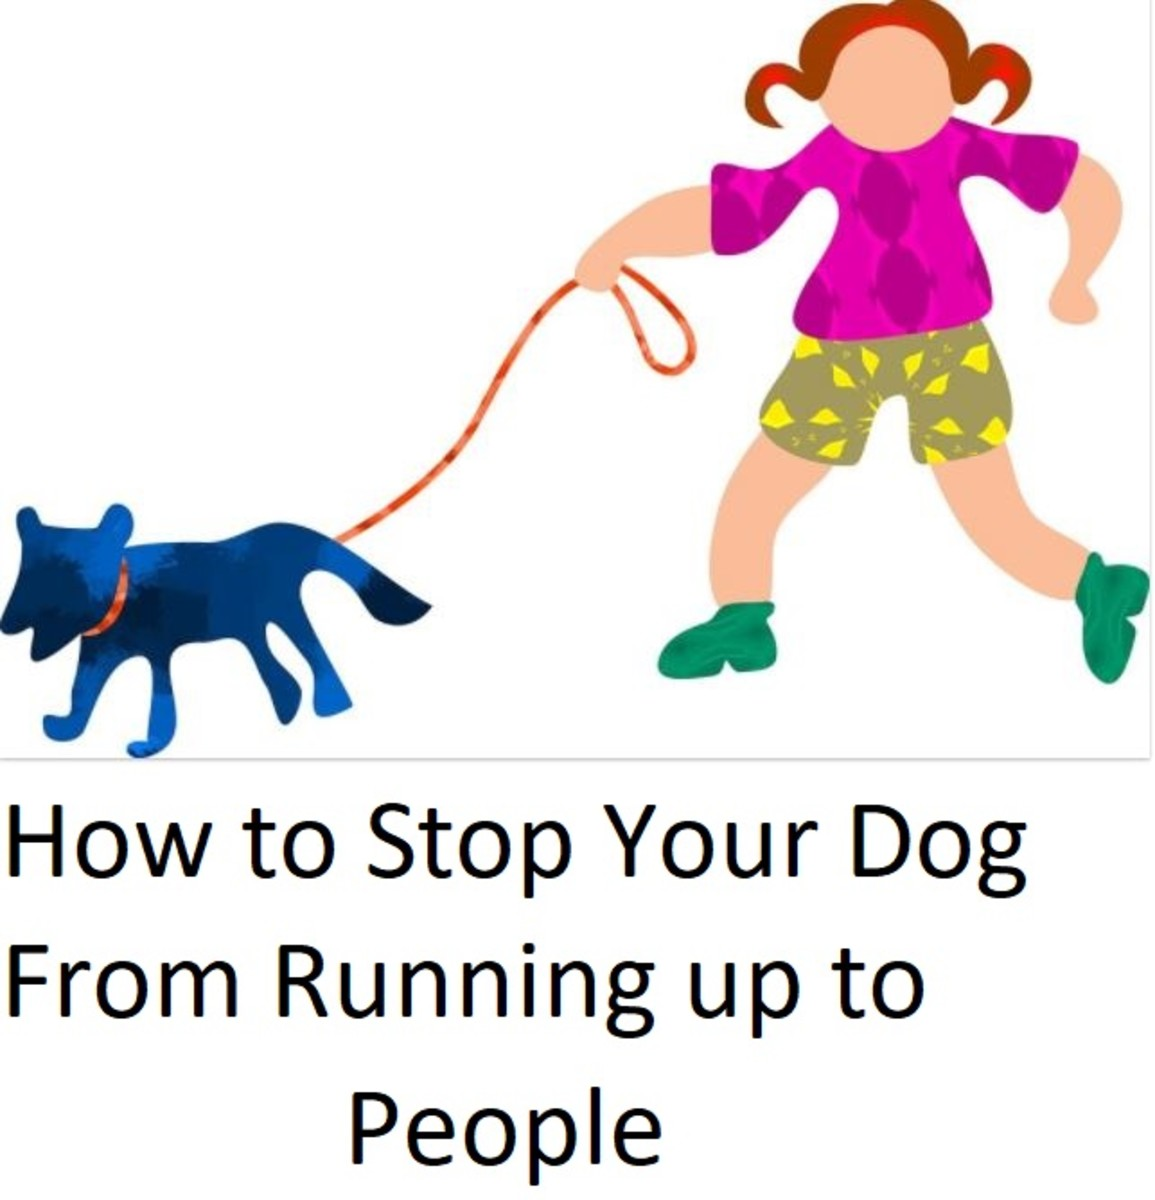 How Can I Stop My Dog From Approaching People?